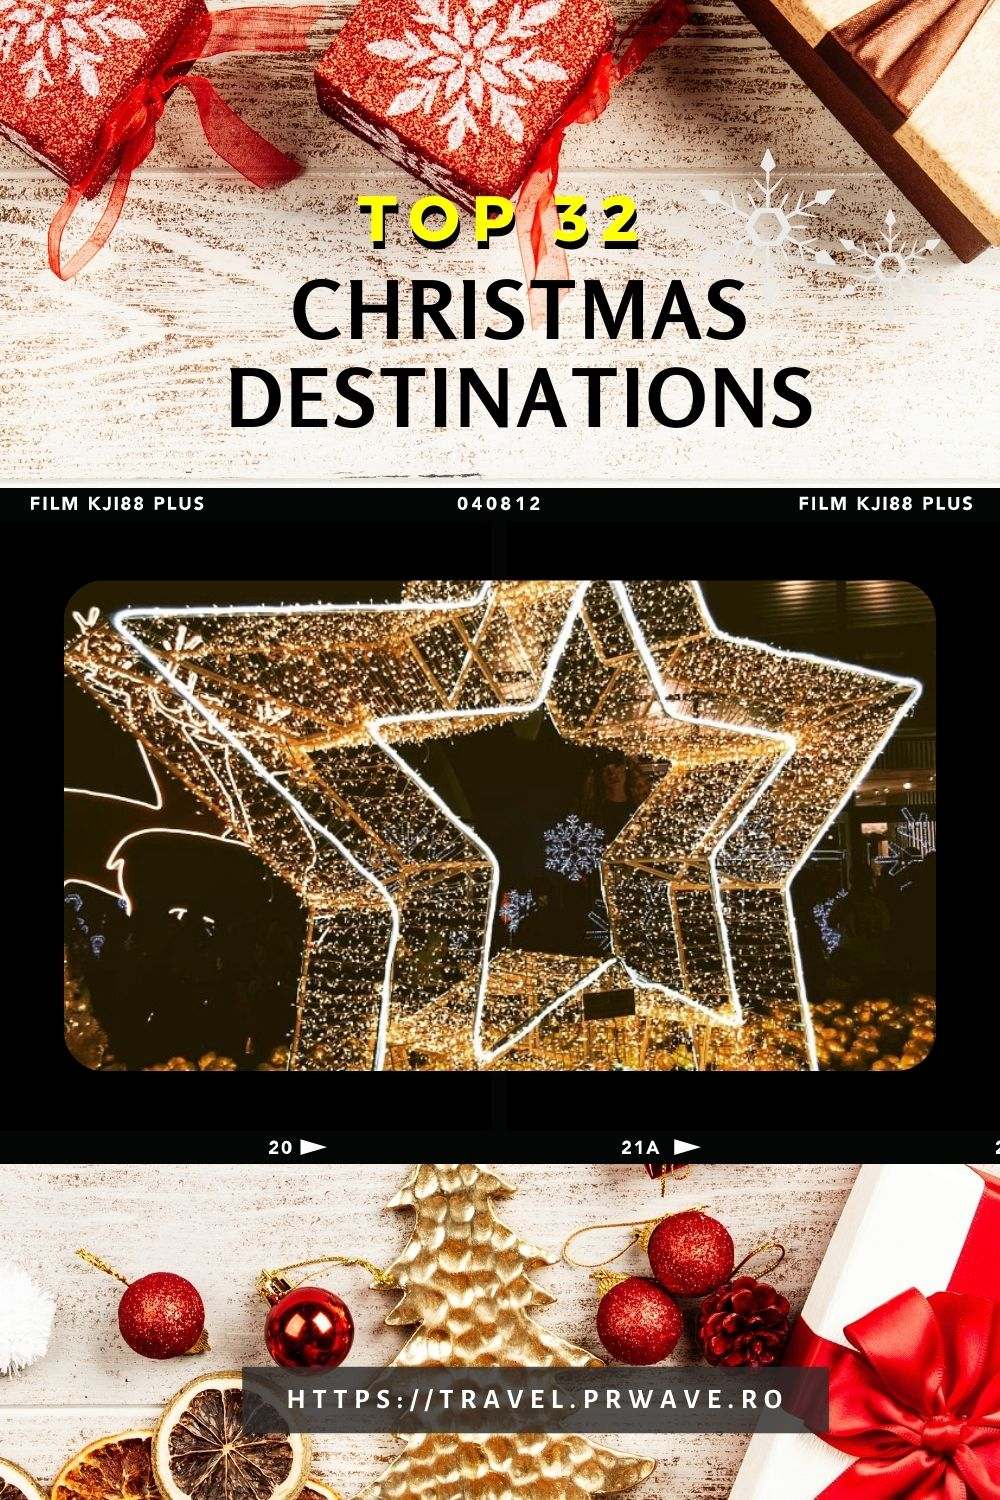 Amazing Christmas destinations! Discover great unique Christmas destinations from this article. 32 places to spend Christmas around the globe. These are perfect for an unforgettable Christmas holiday! #christmas #christmasholiday #holiday #christmastravel #travelmomentsintime #christmasdestinations